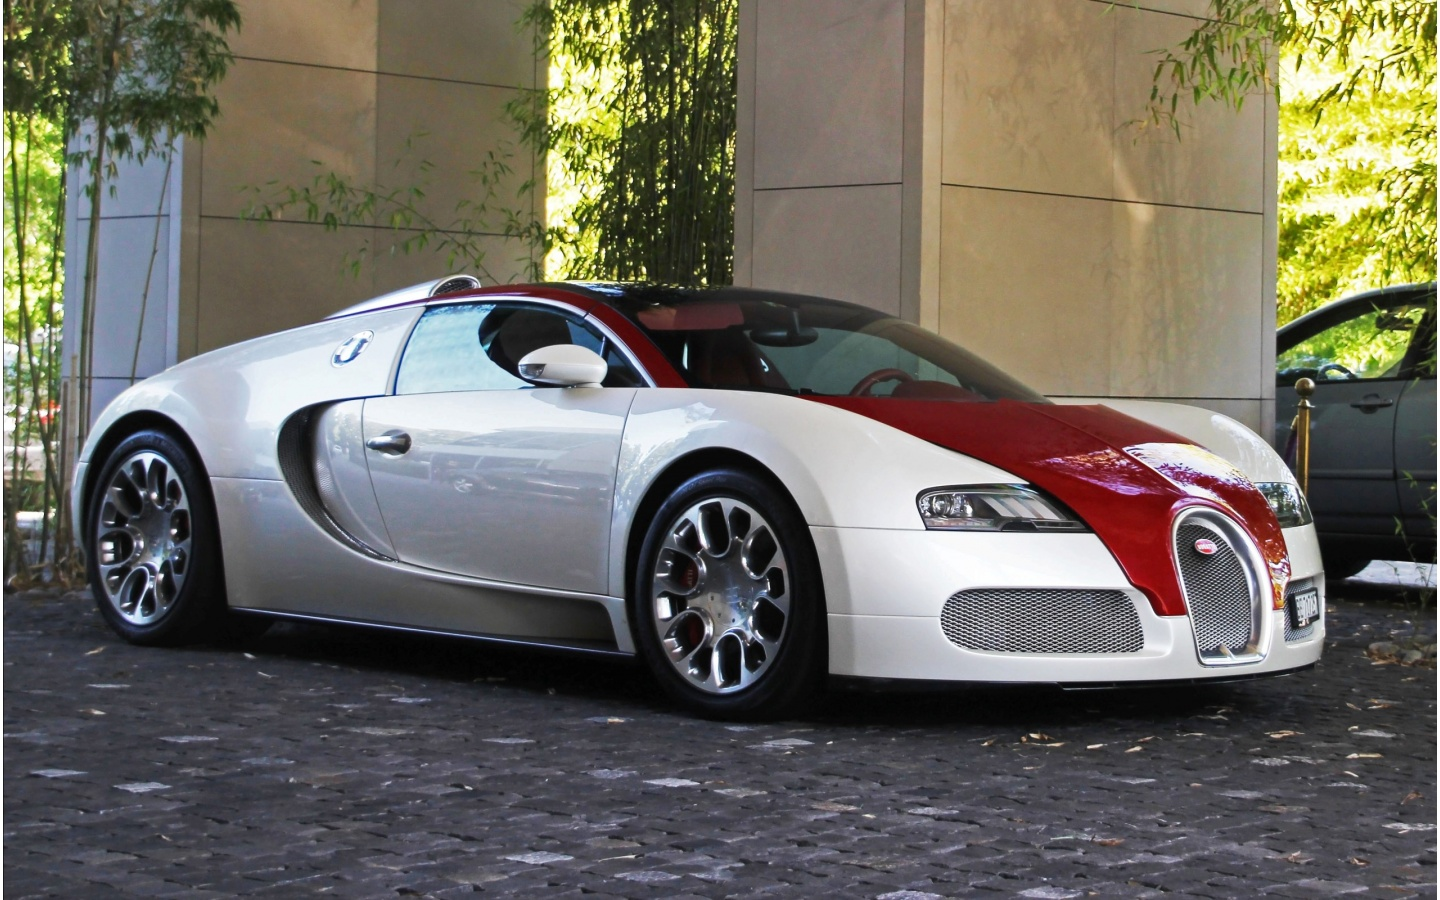 White And Red Bugatti Veyrons Wallpapers - 1440x900 - 460583  White And Red B...